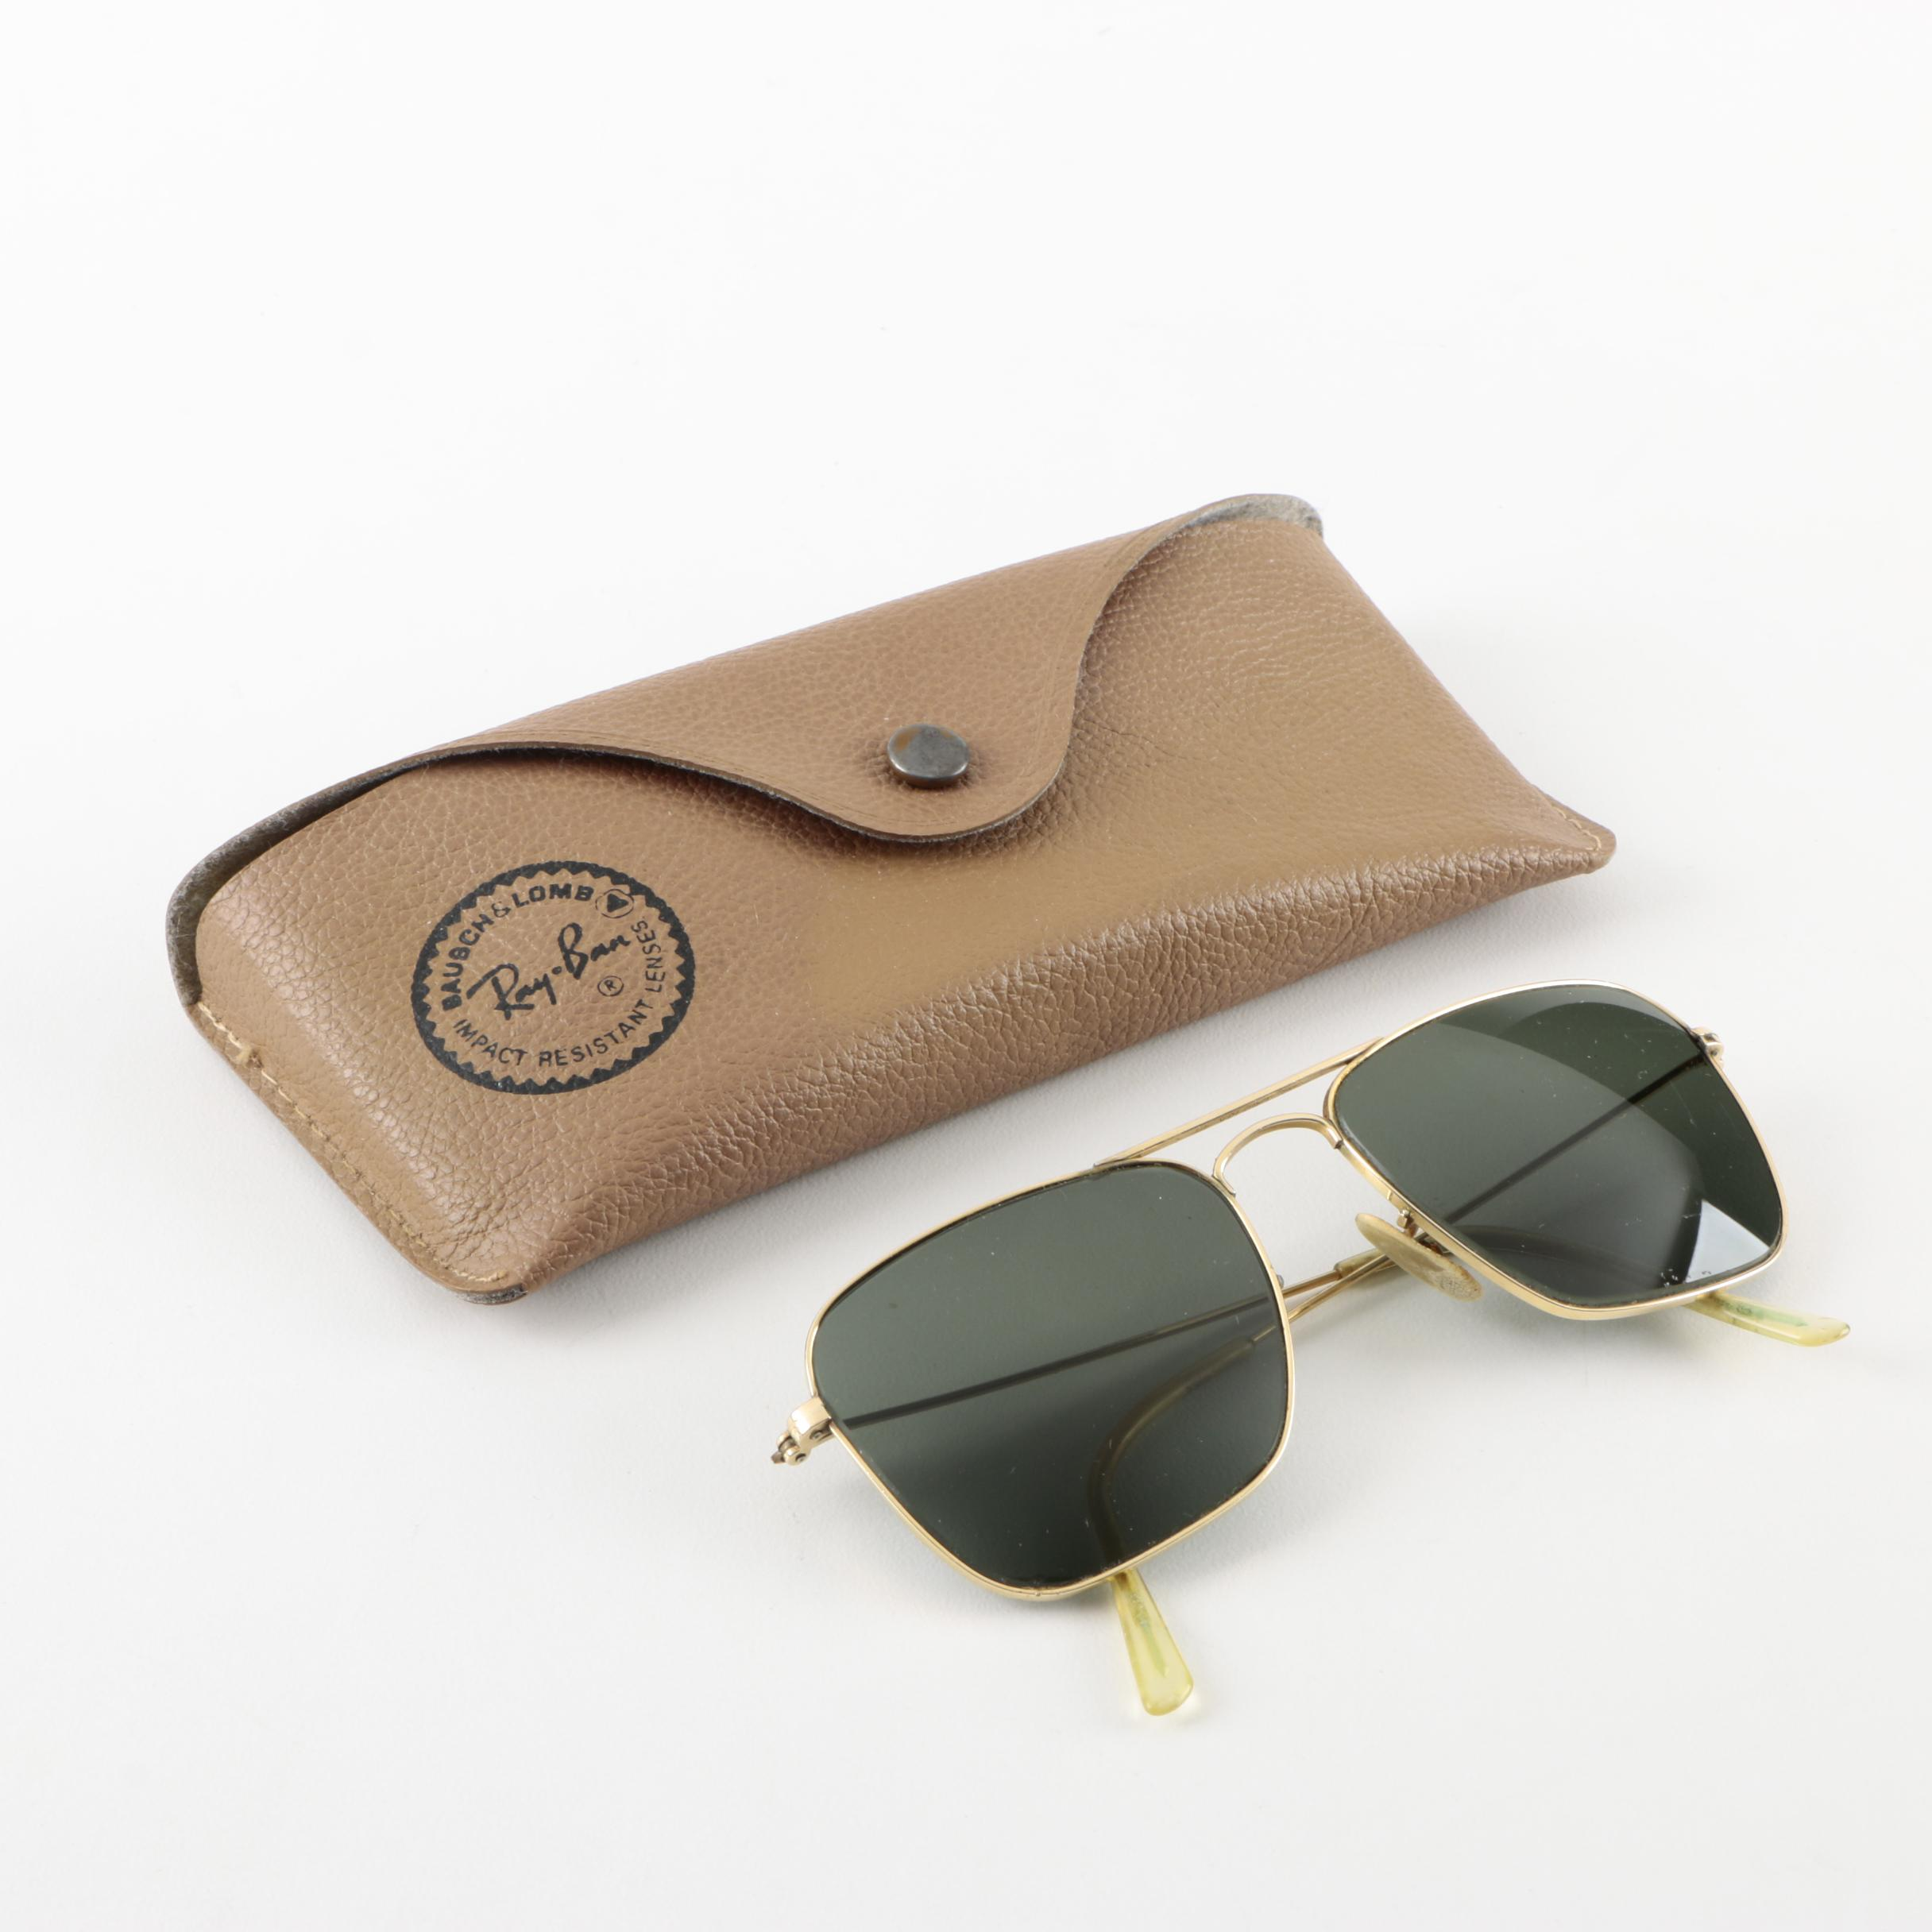 80fe206be6 ... discount code for vintage ray ban 12k gf aviator sunglasses ebth 87334  53208